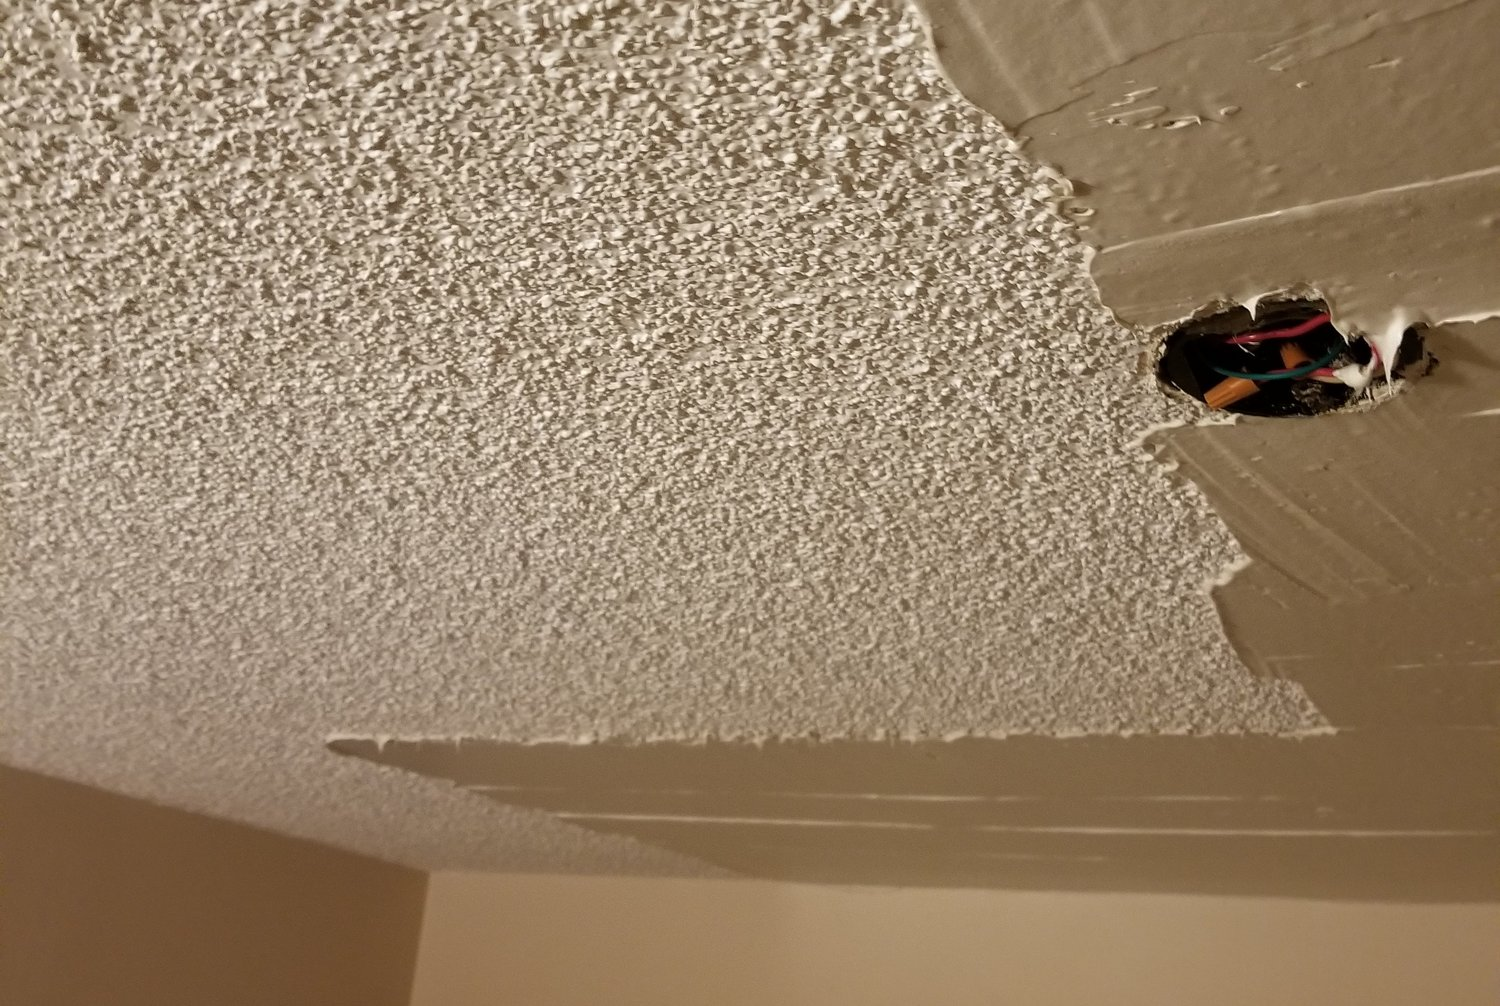 Popcorn Ceiling Removal-Longview TX Professional Painting Contractors-We offer Residential & Commercial Painting, Interior Painting, Exterior Painting, Primer Painting, Industrial Painting, Professional Painters, Institutional Painters, and more.